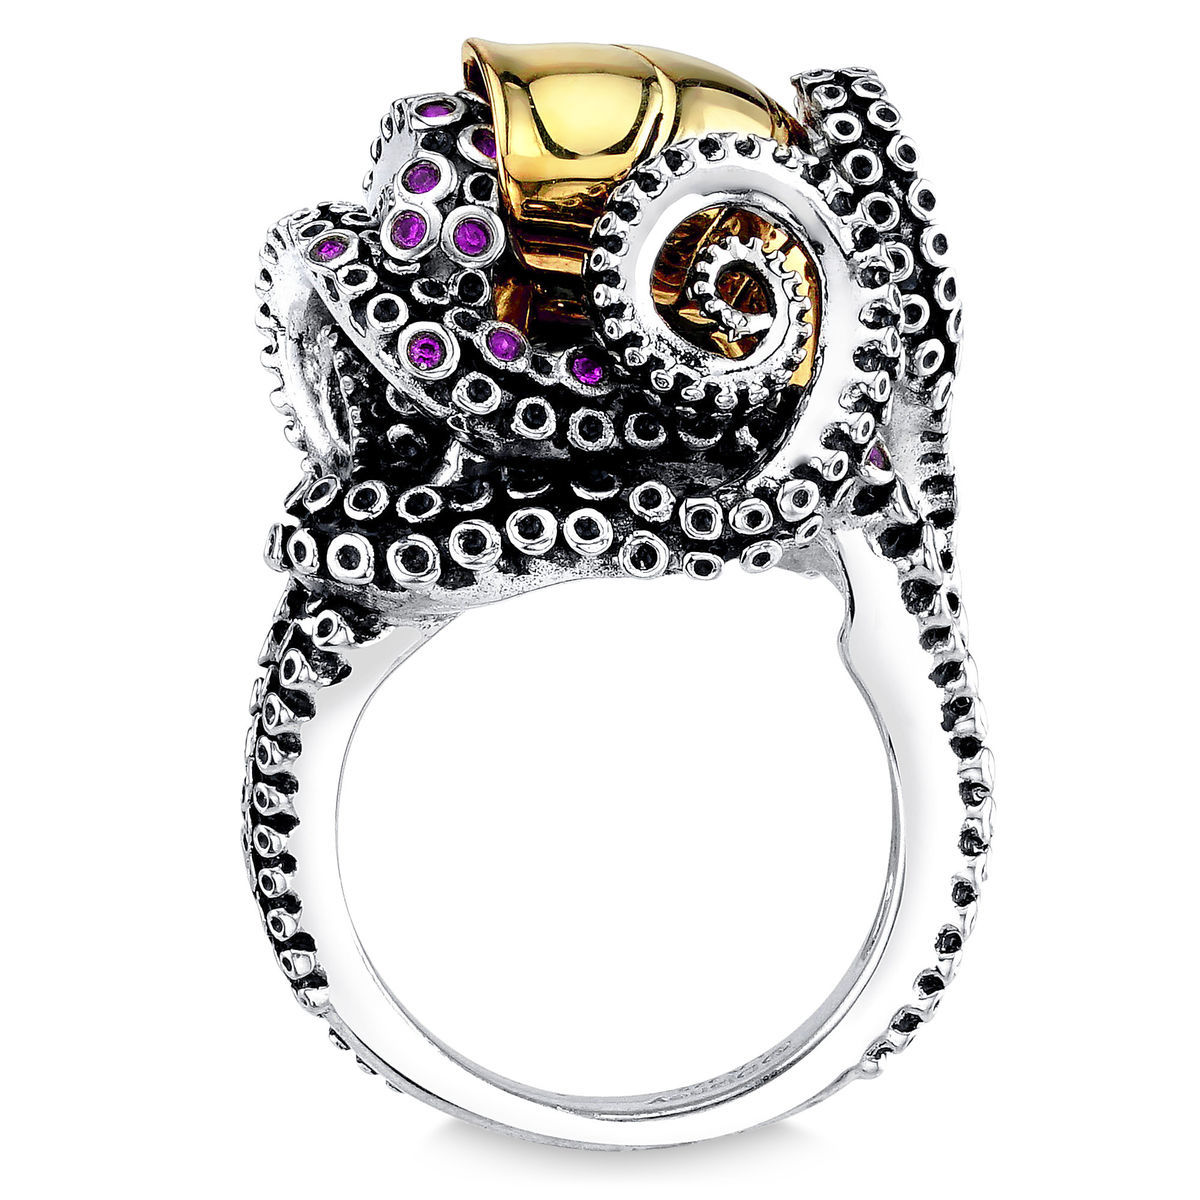 Product Image Of Ursula Ring By Rocklove The Little Mermaid 2